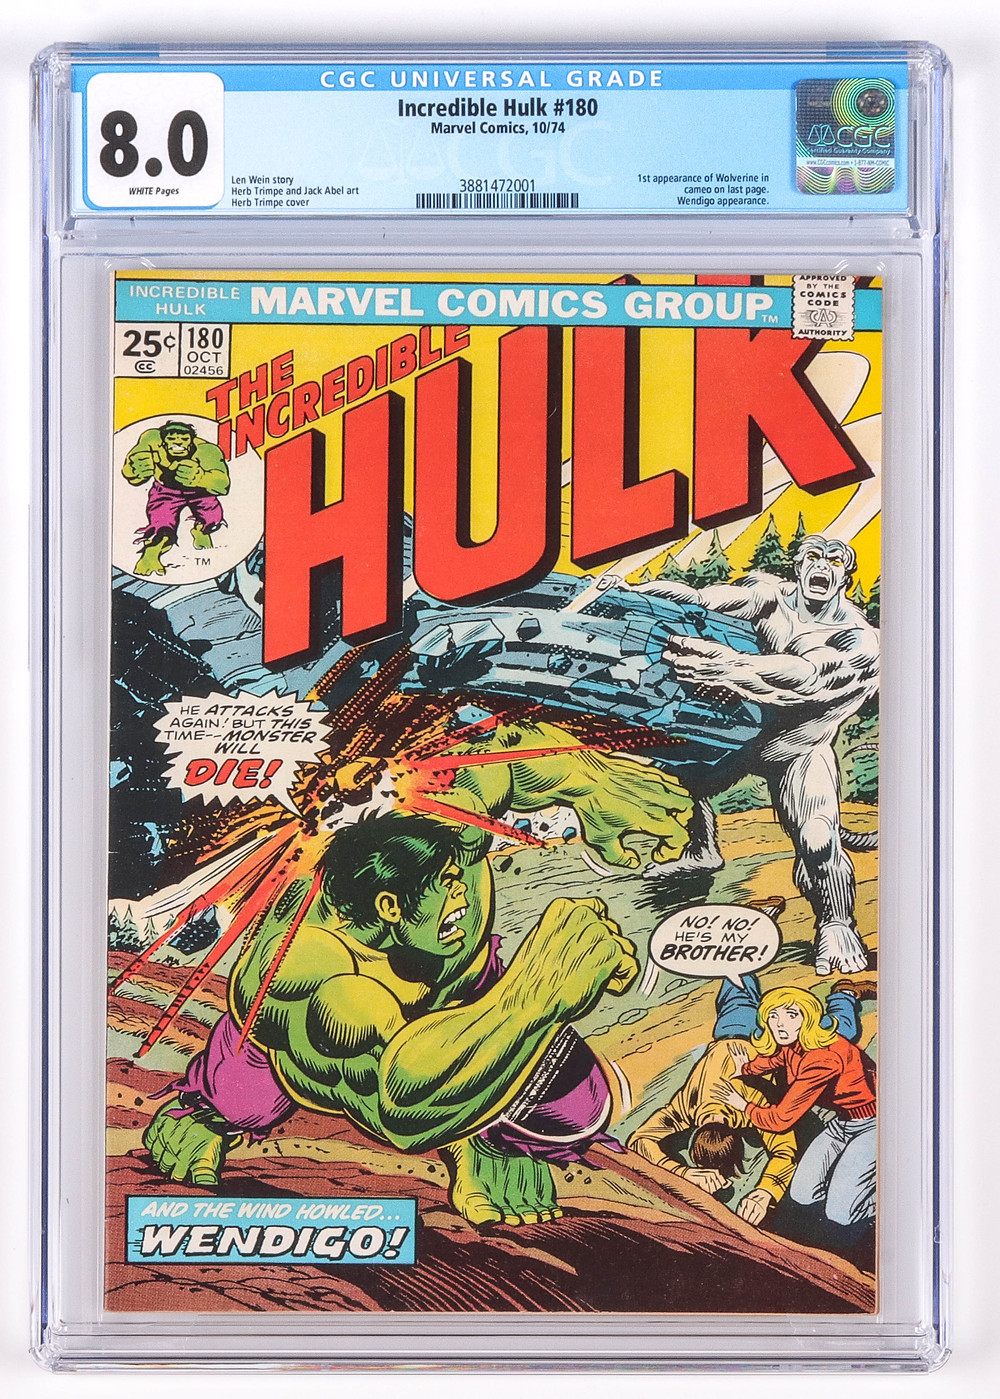 Incredible Hulk No 180, CGC 8.0 white pages, October 1974, first appearance of Wolverine in cameo, not pressed or cleaned prior to grading by CGC, grader notes include light spine stress, very light bends to cover